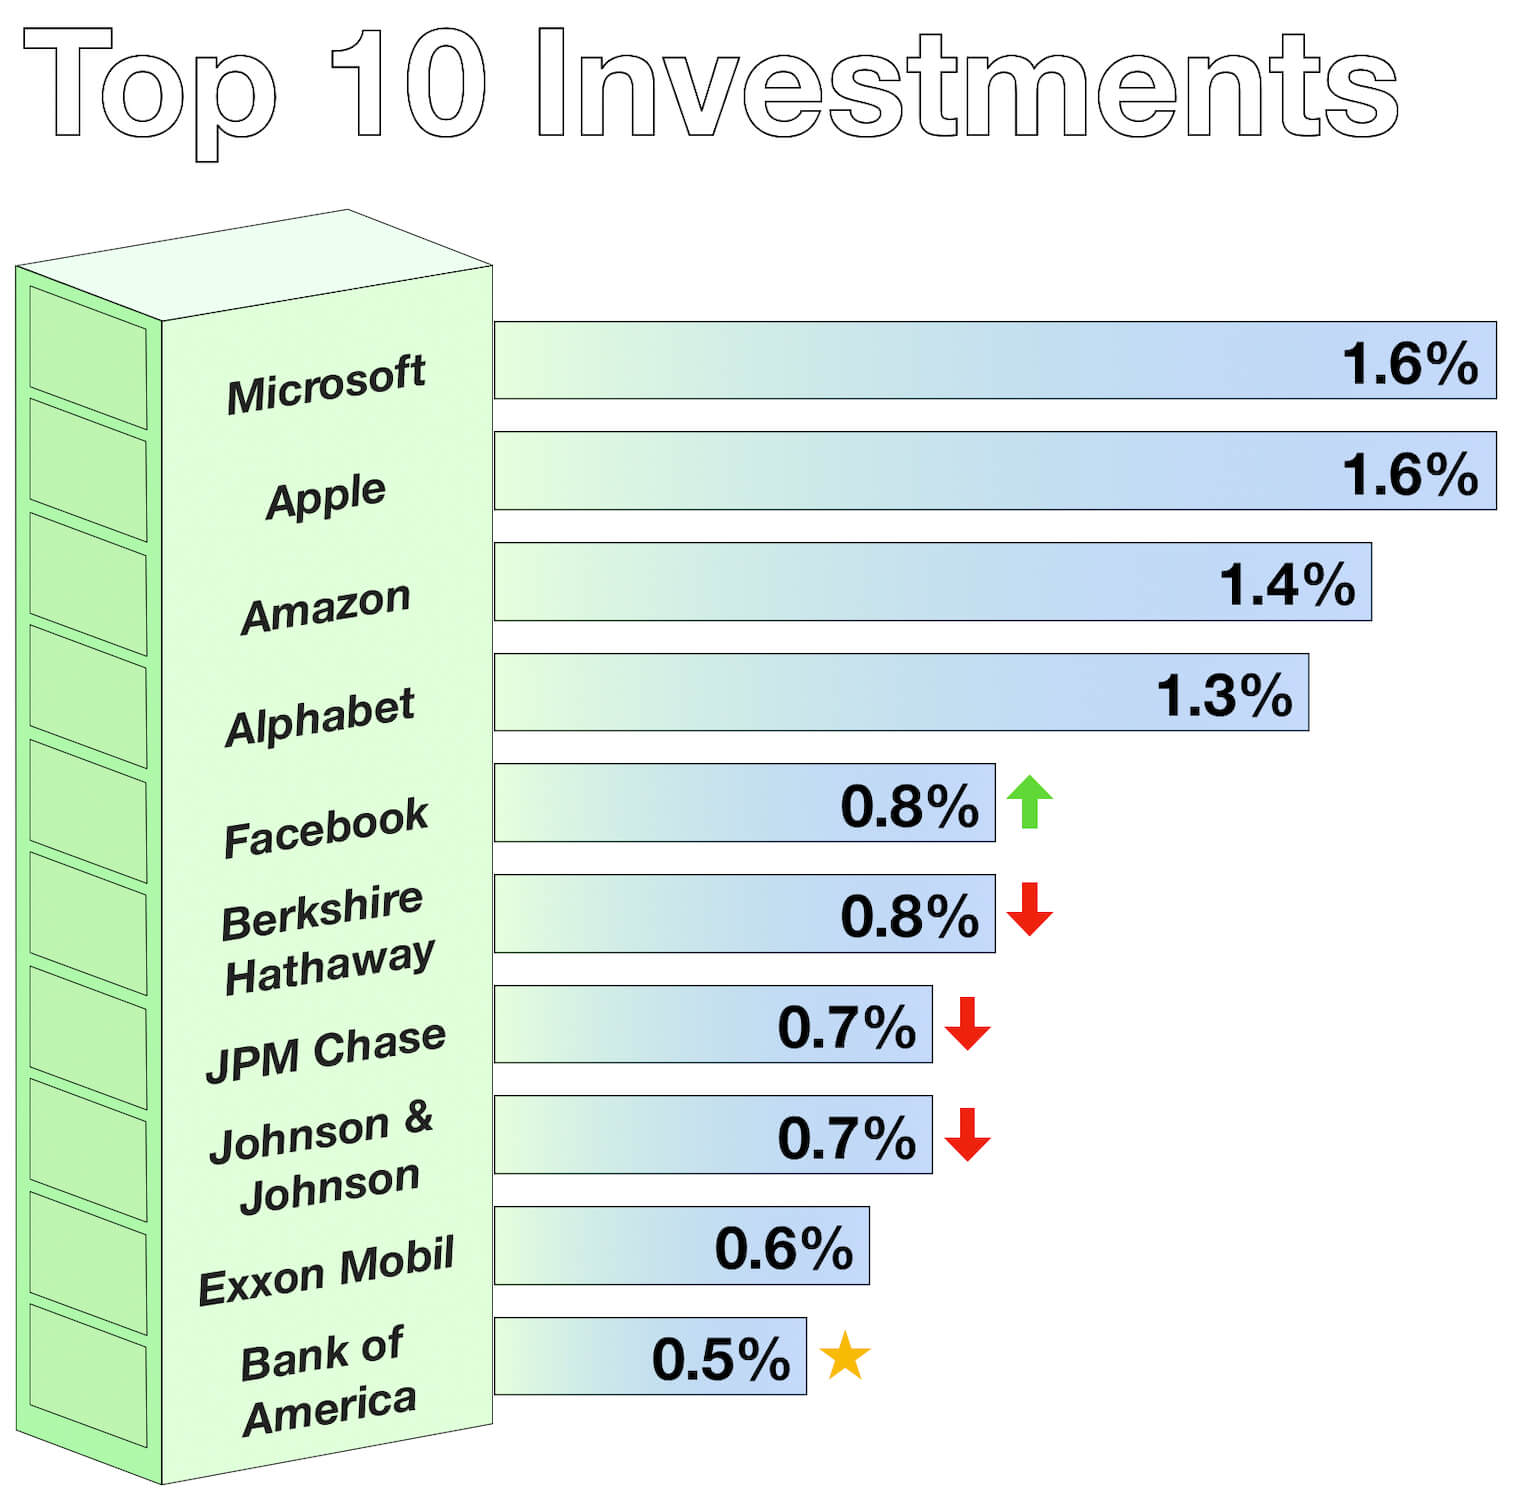 Top 10 Investments - Passive Index Investments - February 2019